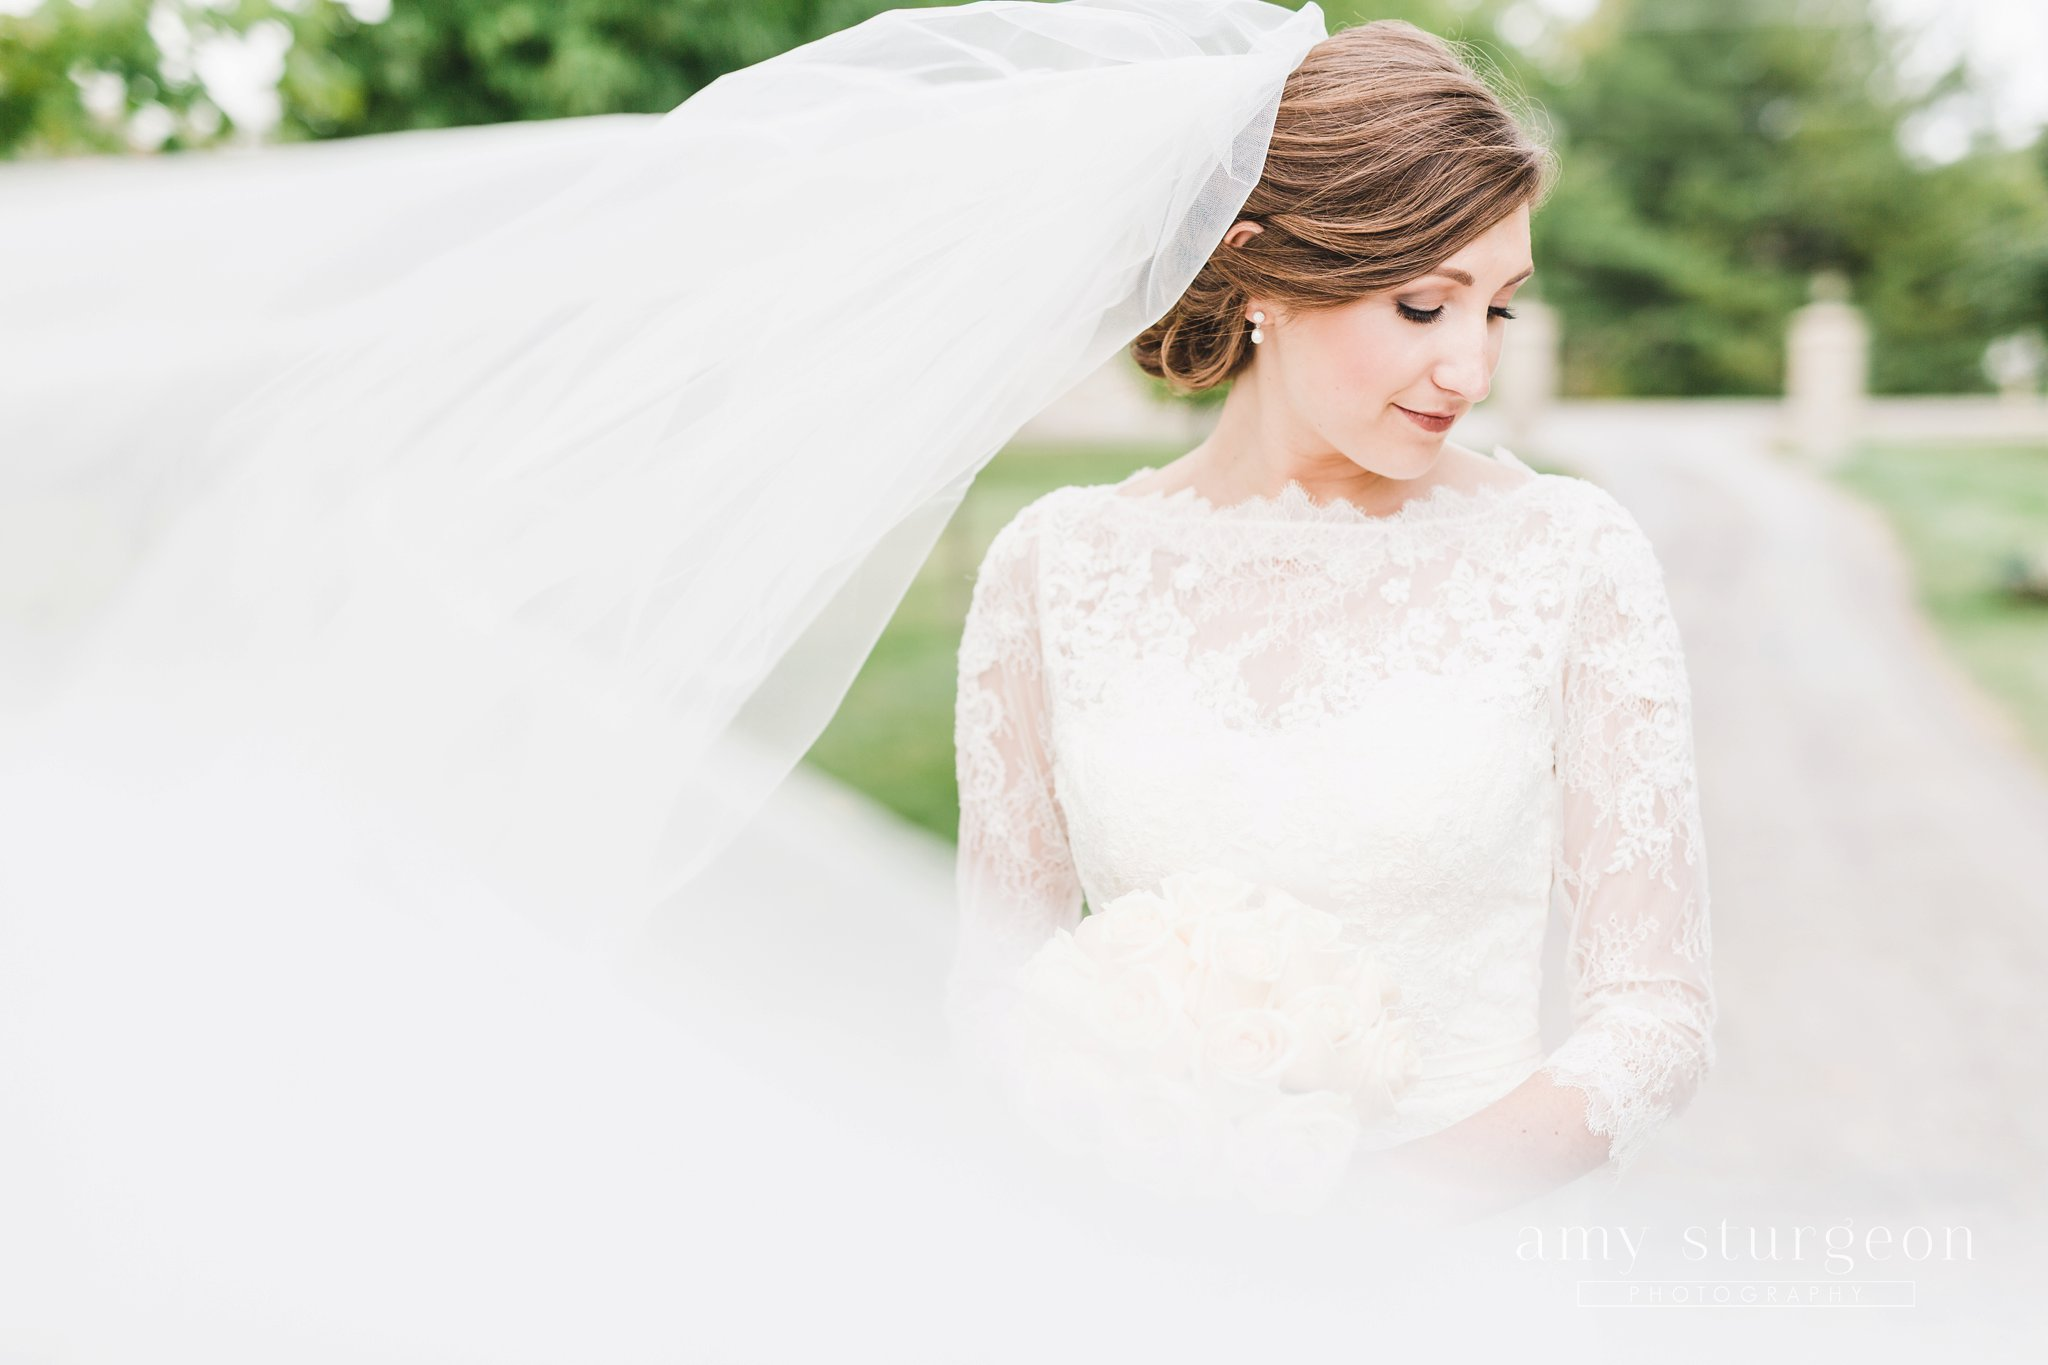 The bride's cathedral veil blew in the wind at the alpaca farm wedding